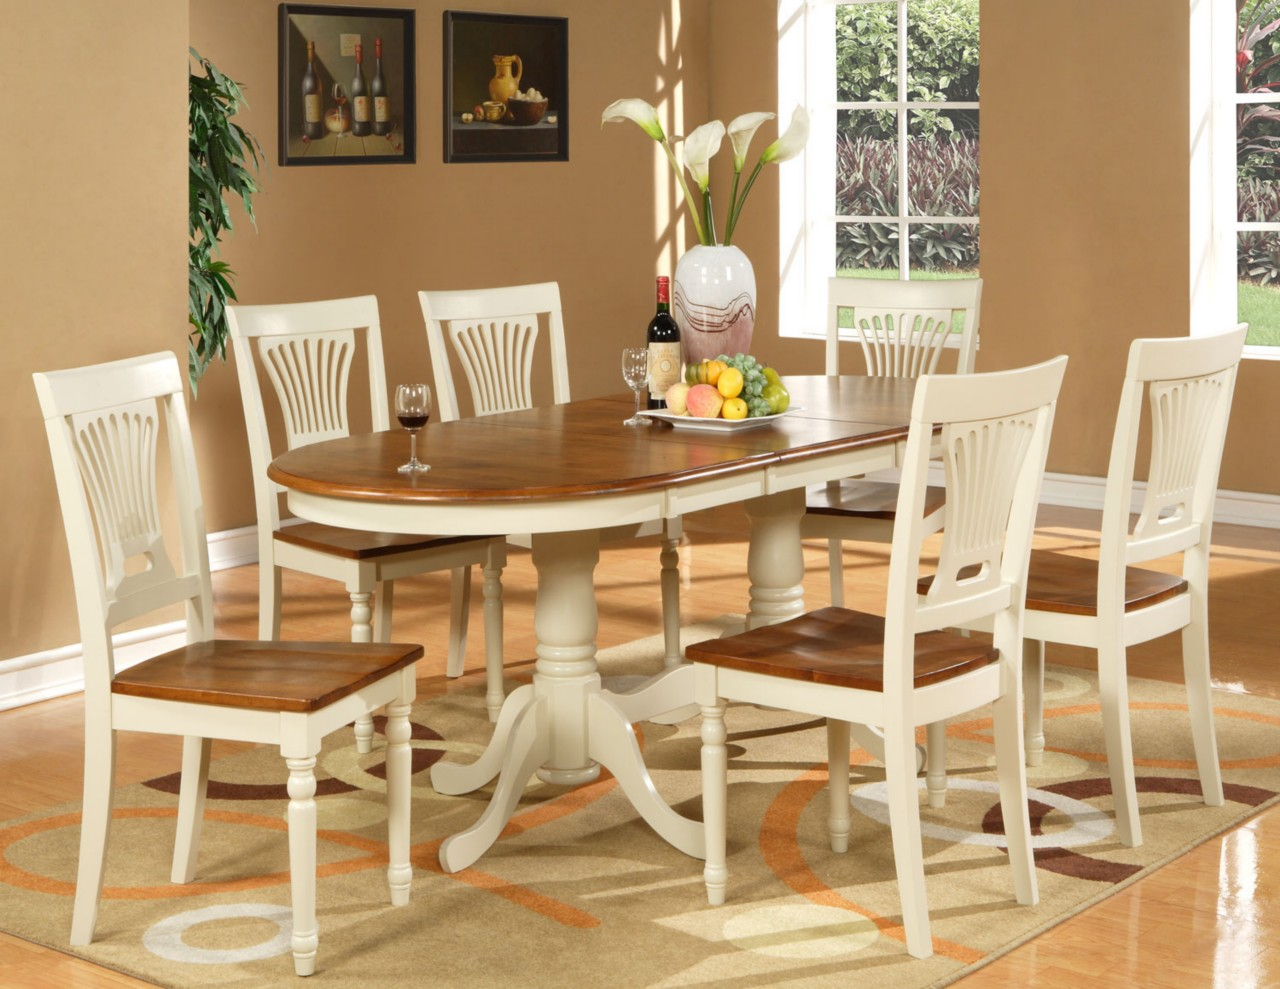 7pc oval dining room set table 6 chairs extension leaf ebay for Kitchen table set 6 chairs